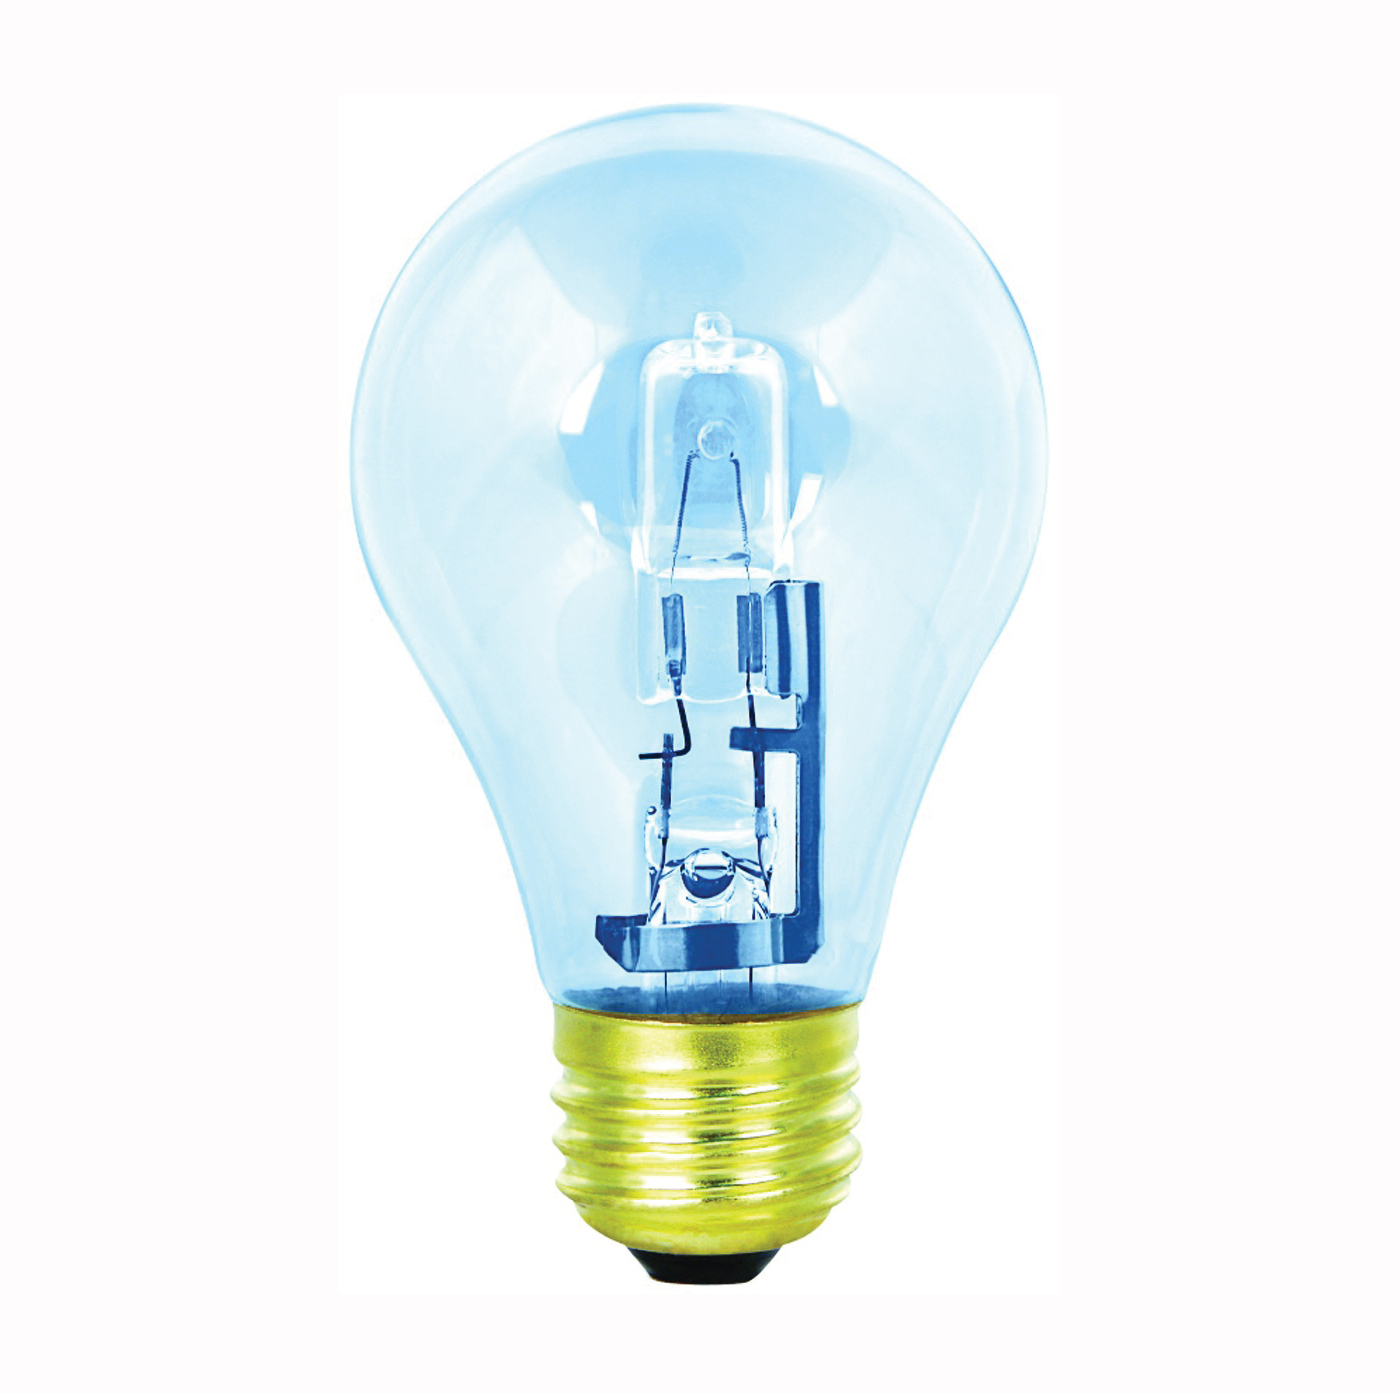 Picture of Feit Electric Q72A/CL/D/2 Halogen Lamp, 72 W, Medium E26 Lamp Base, A19 Lamp, Soft White Light, 1120 Lumens